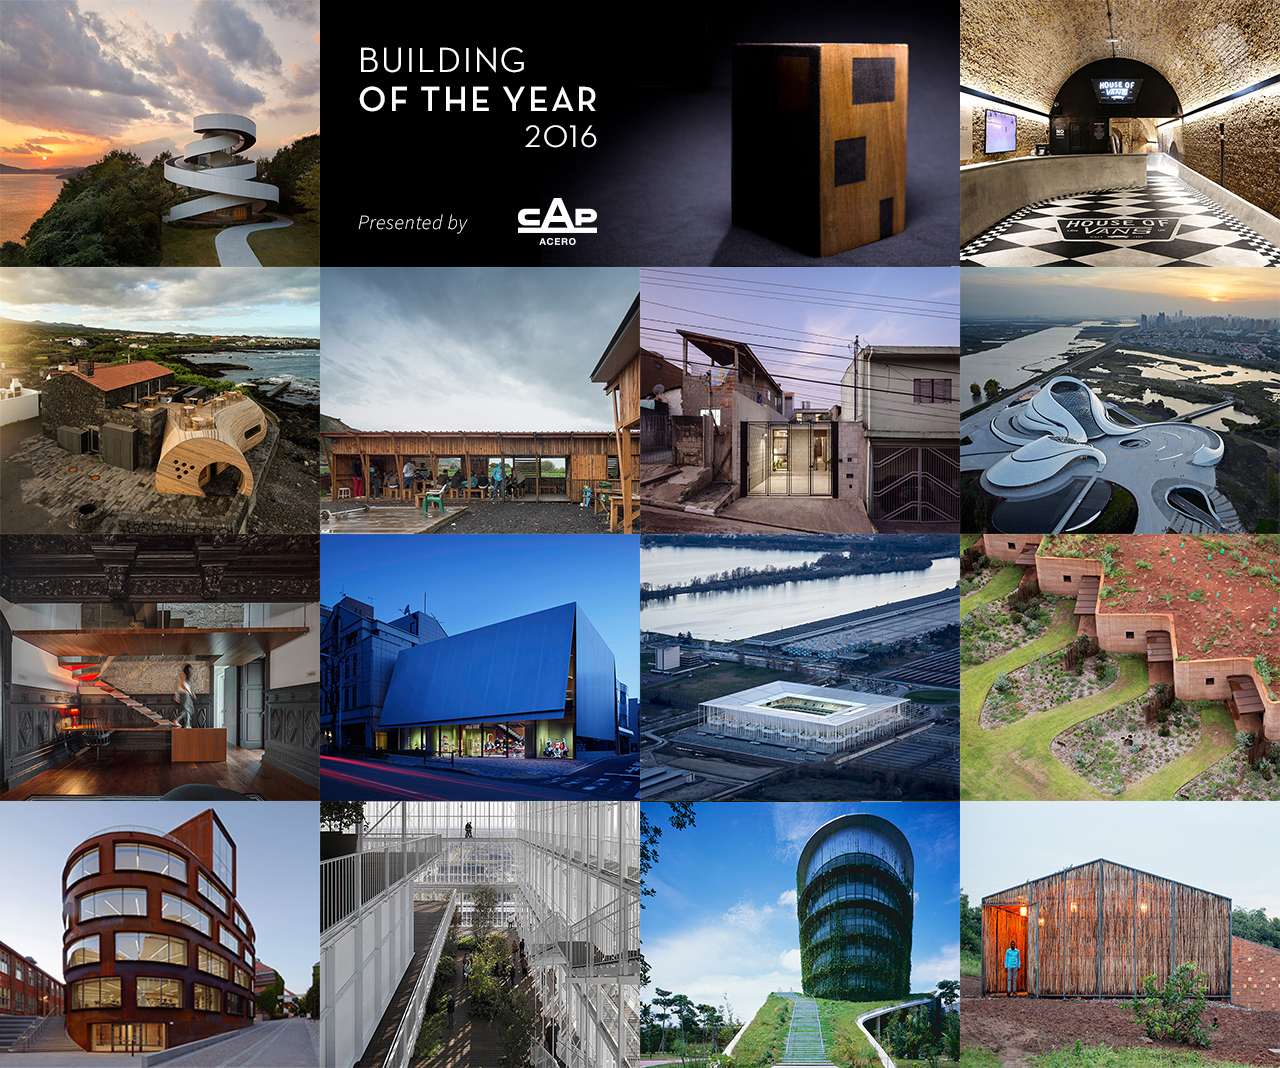 Winners of the 2016 Building of the Year Awards